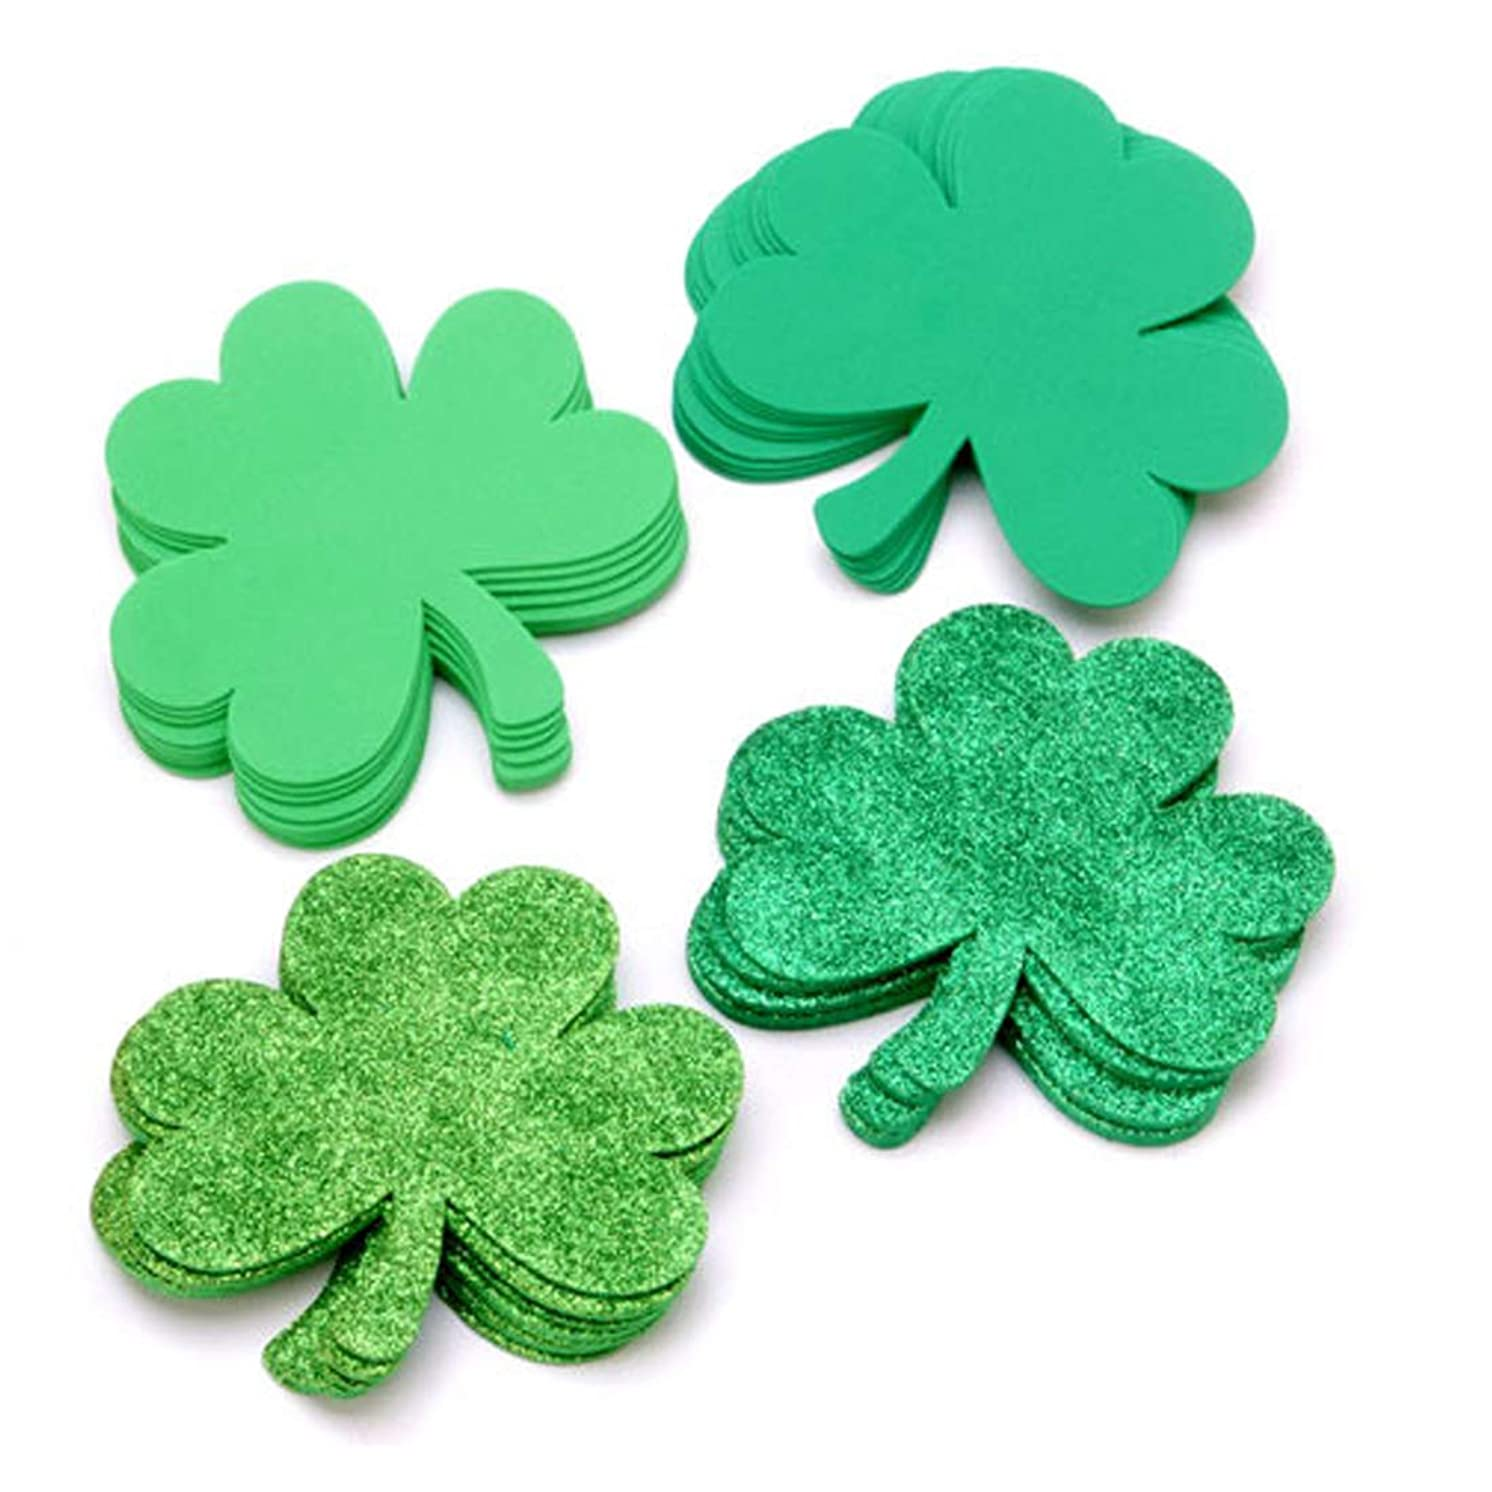 36 Piece Set of 5.5 inch Foam Shamrocks for Saint Patrick's Day Crafts Projects